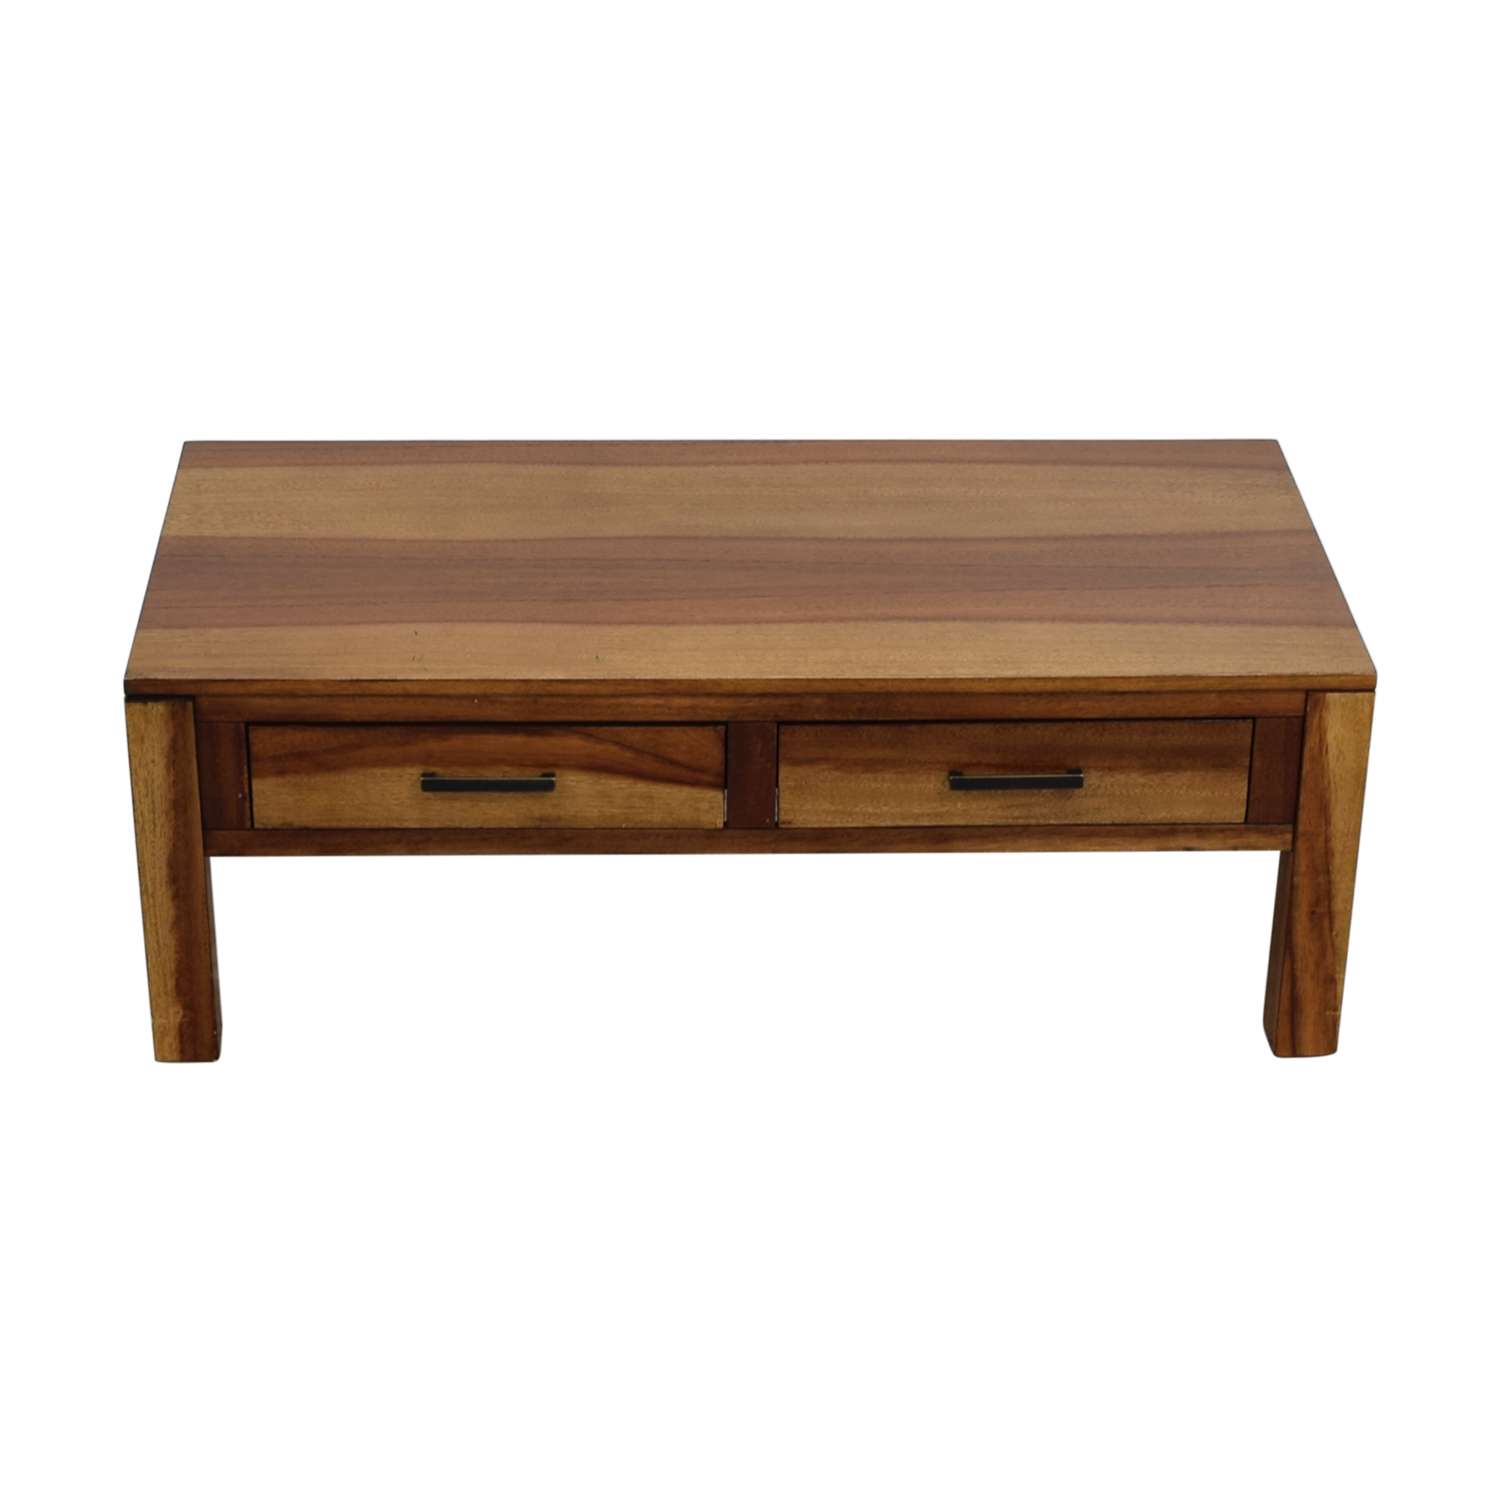 58 off coaster coaster coffee table with two drawers tables Coaster coffee tables